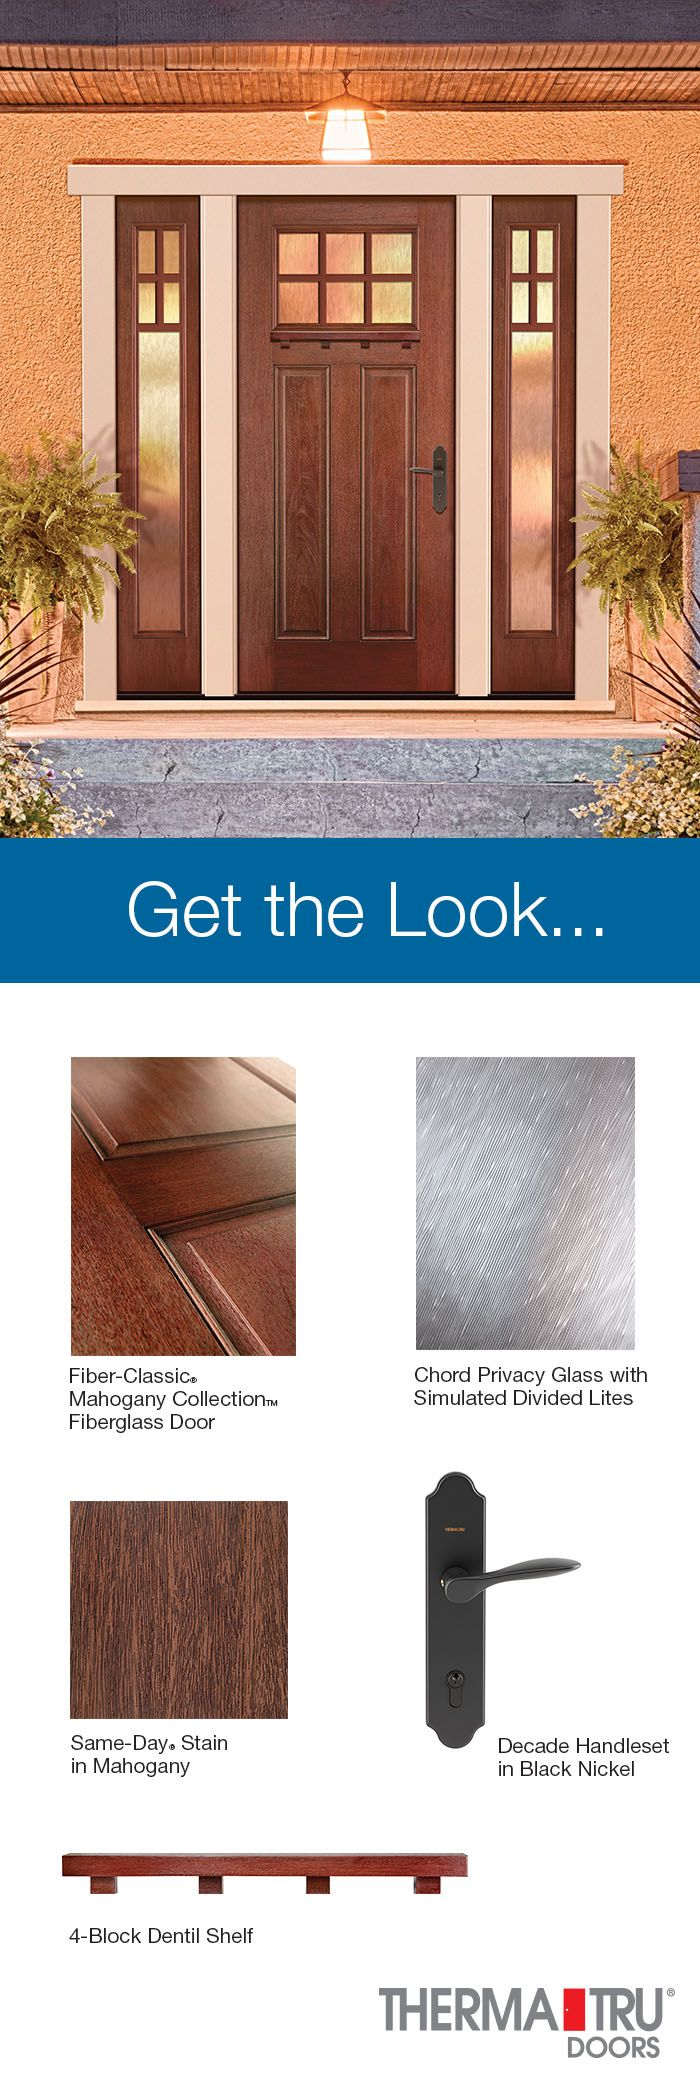 1000 ideas about privacy glass on pinterest central for Therma tru fiber classic mahogany price